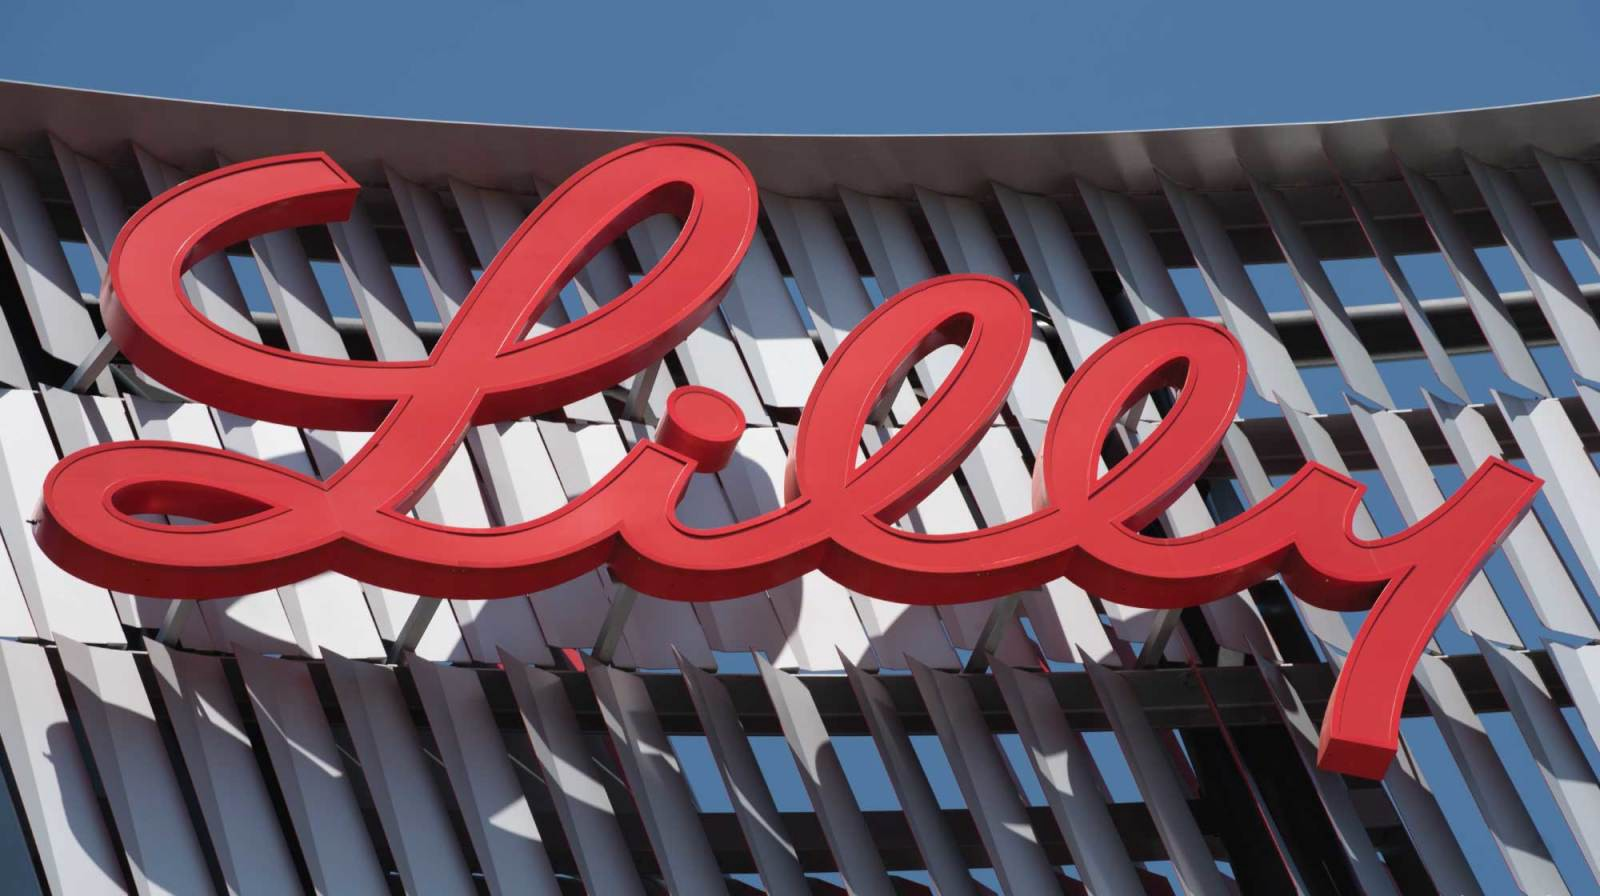 Retevmo (selpercatinib) is a new advanced oncology product from Eli Lilly